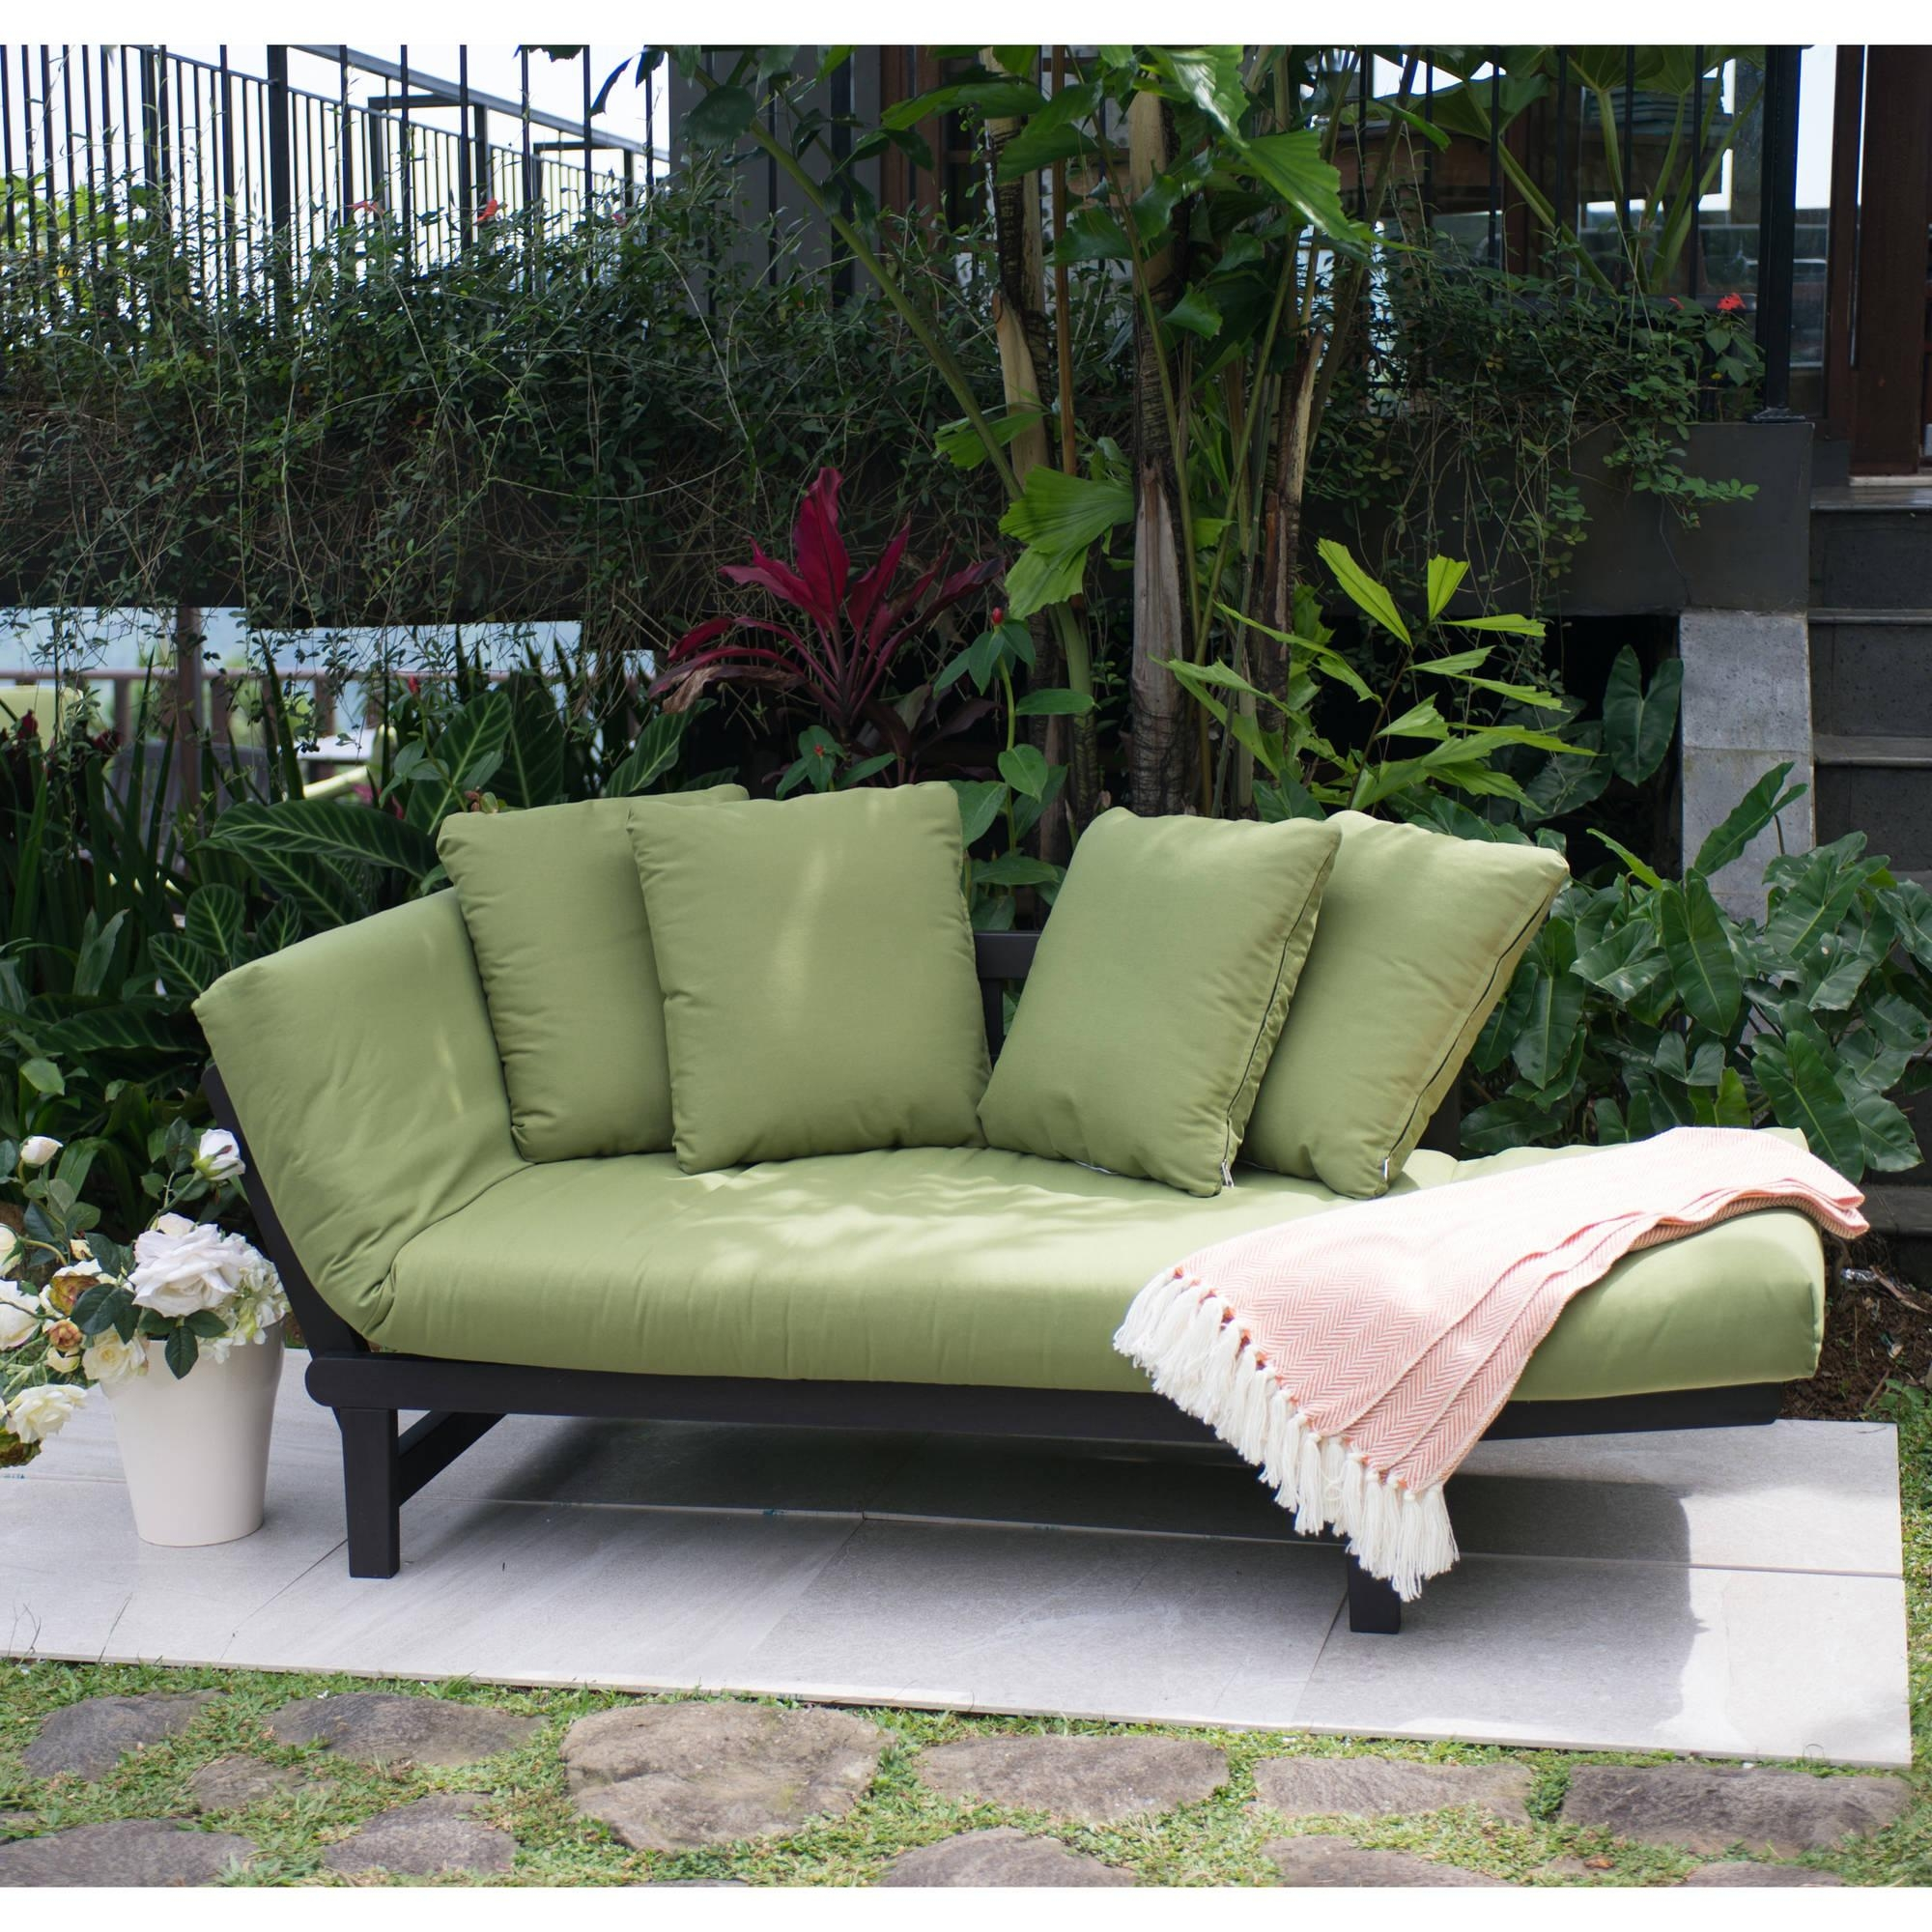 Sofas : Awesome Outdoor Dining Chair Cushions Outdoor Pillows Inside Cheap Patio Sofas (View 17 of 22)